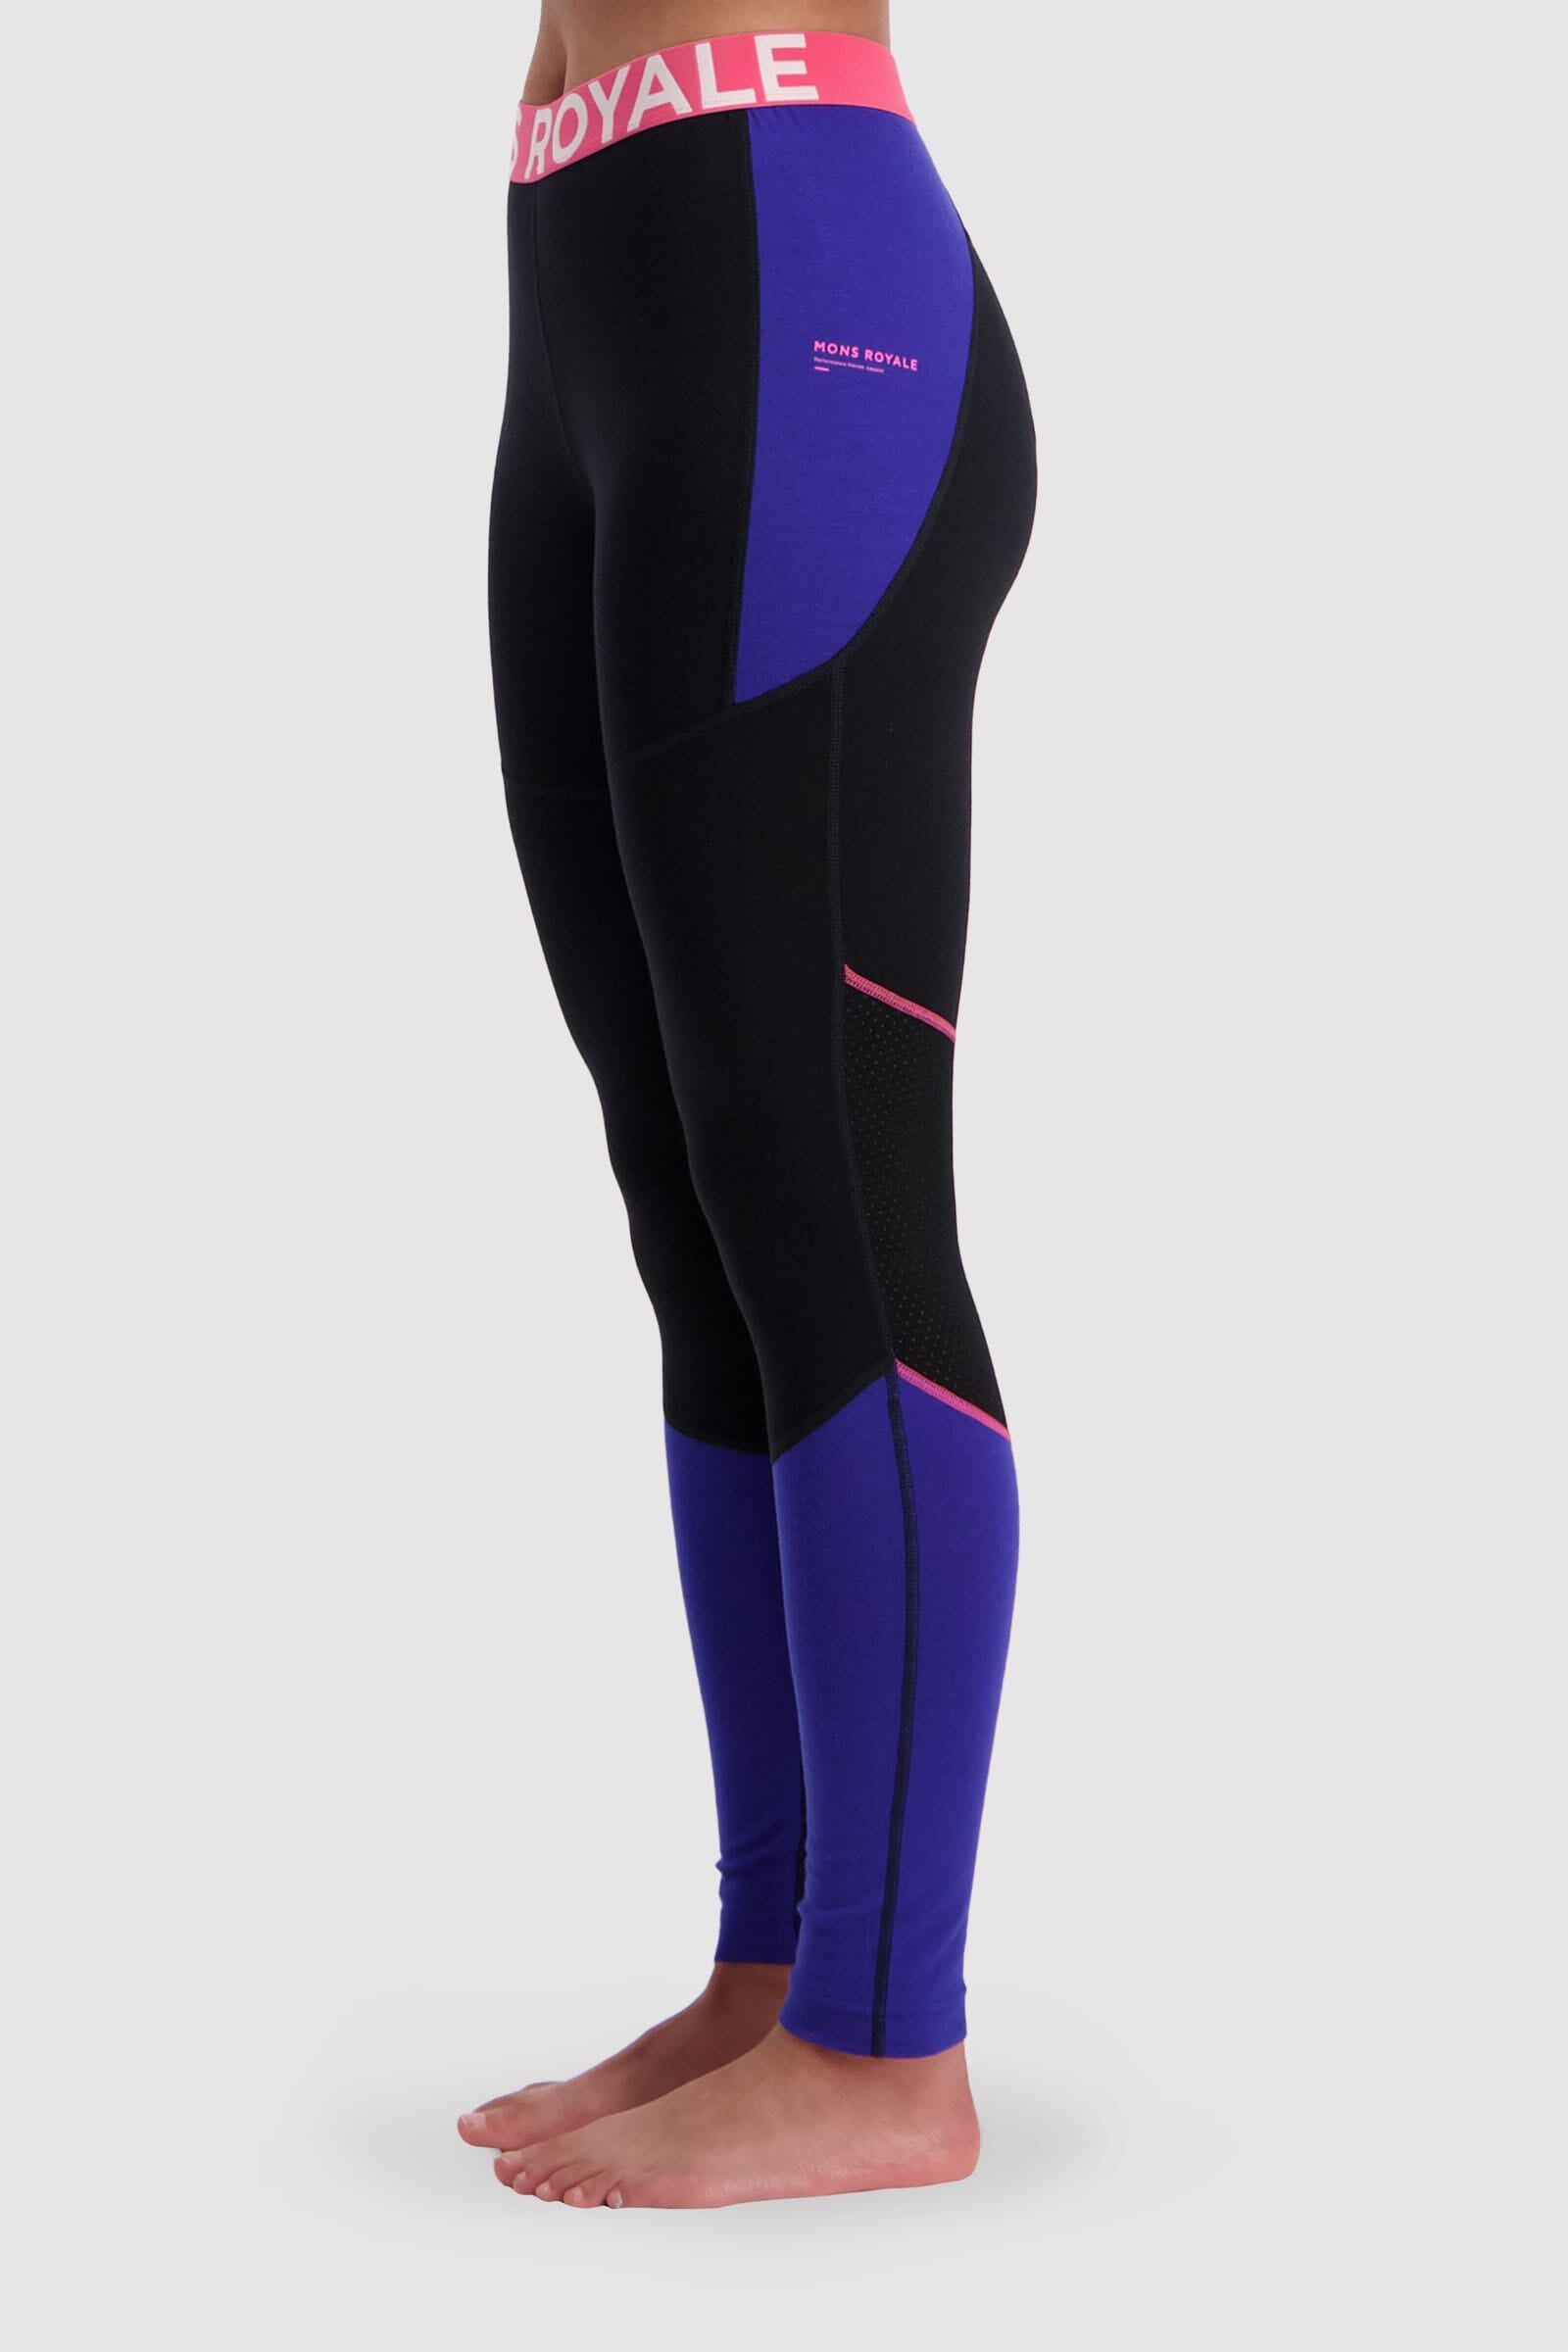 Olympus 3.0 Legging - Ultra Blue / Black